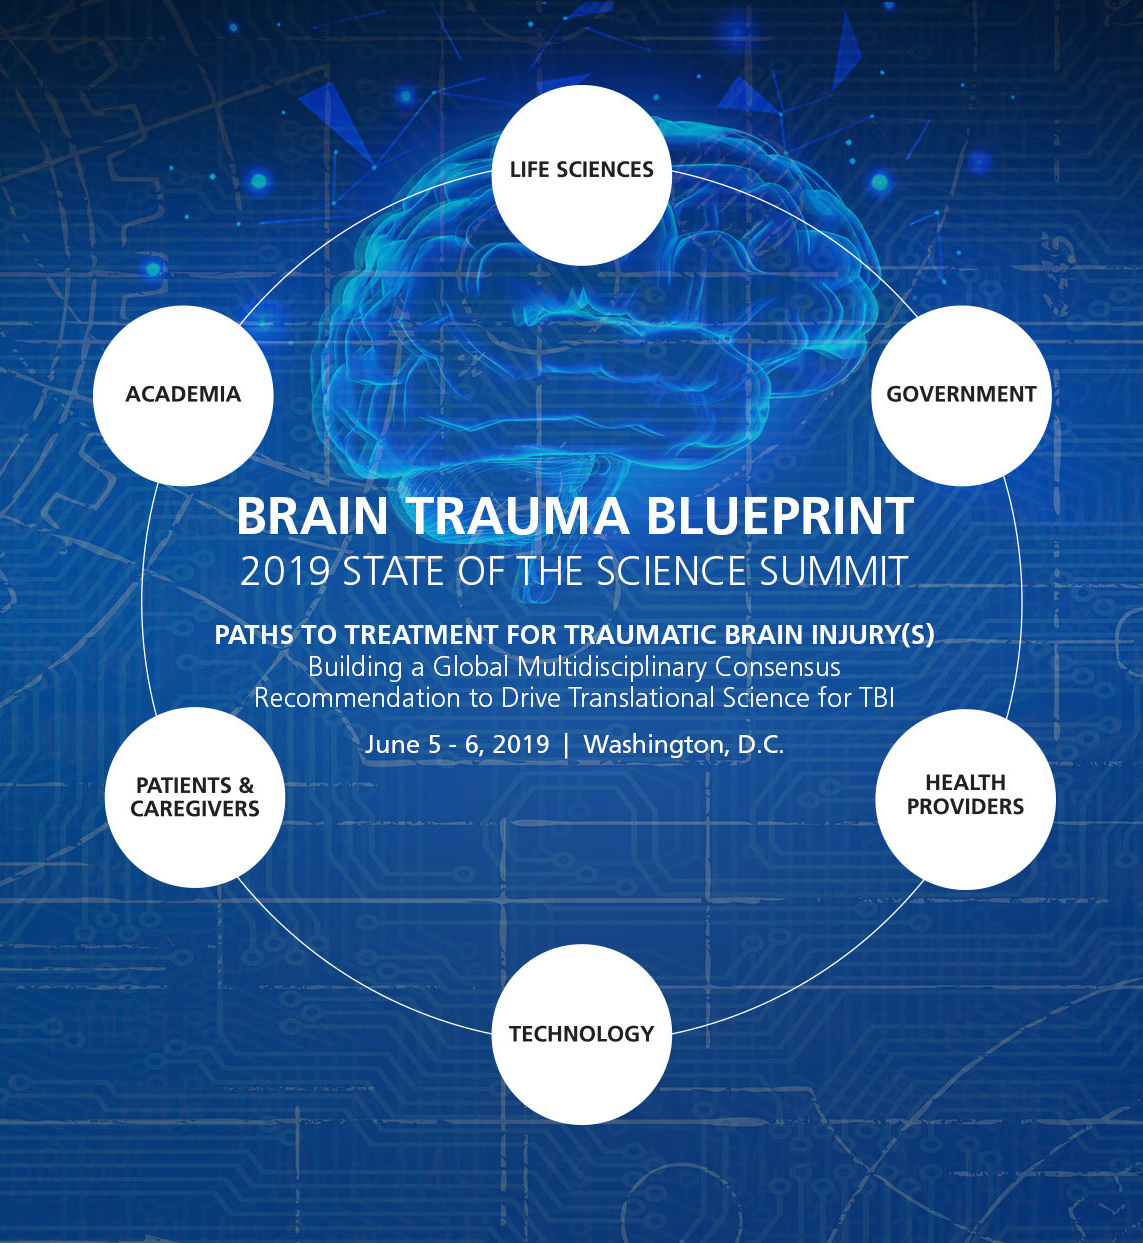 2019 State of the Science Summit